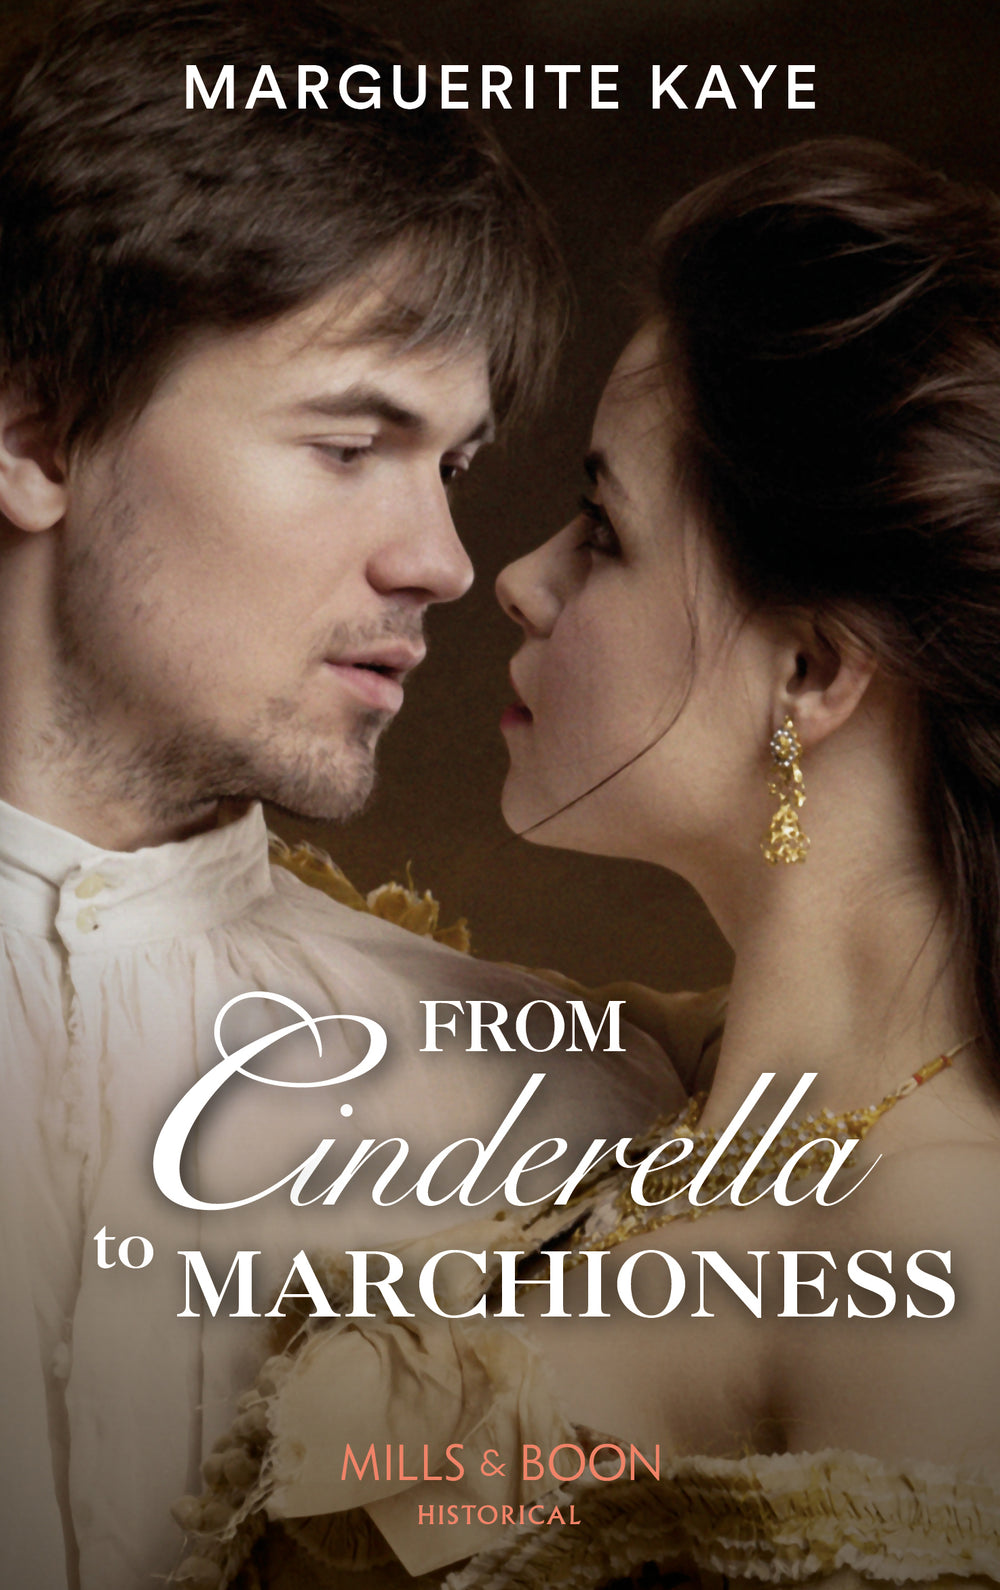 From Cinderella to Marchioness - Chapter 6